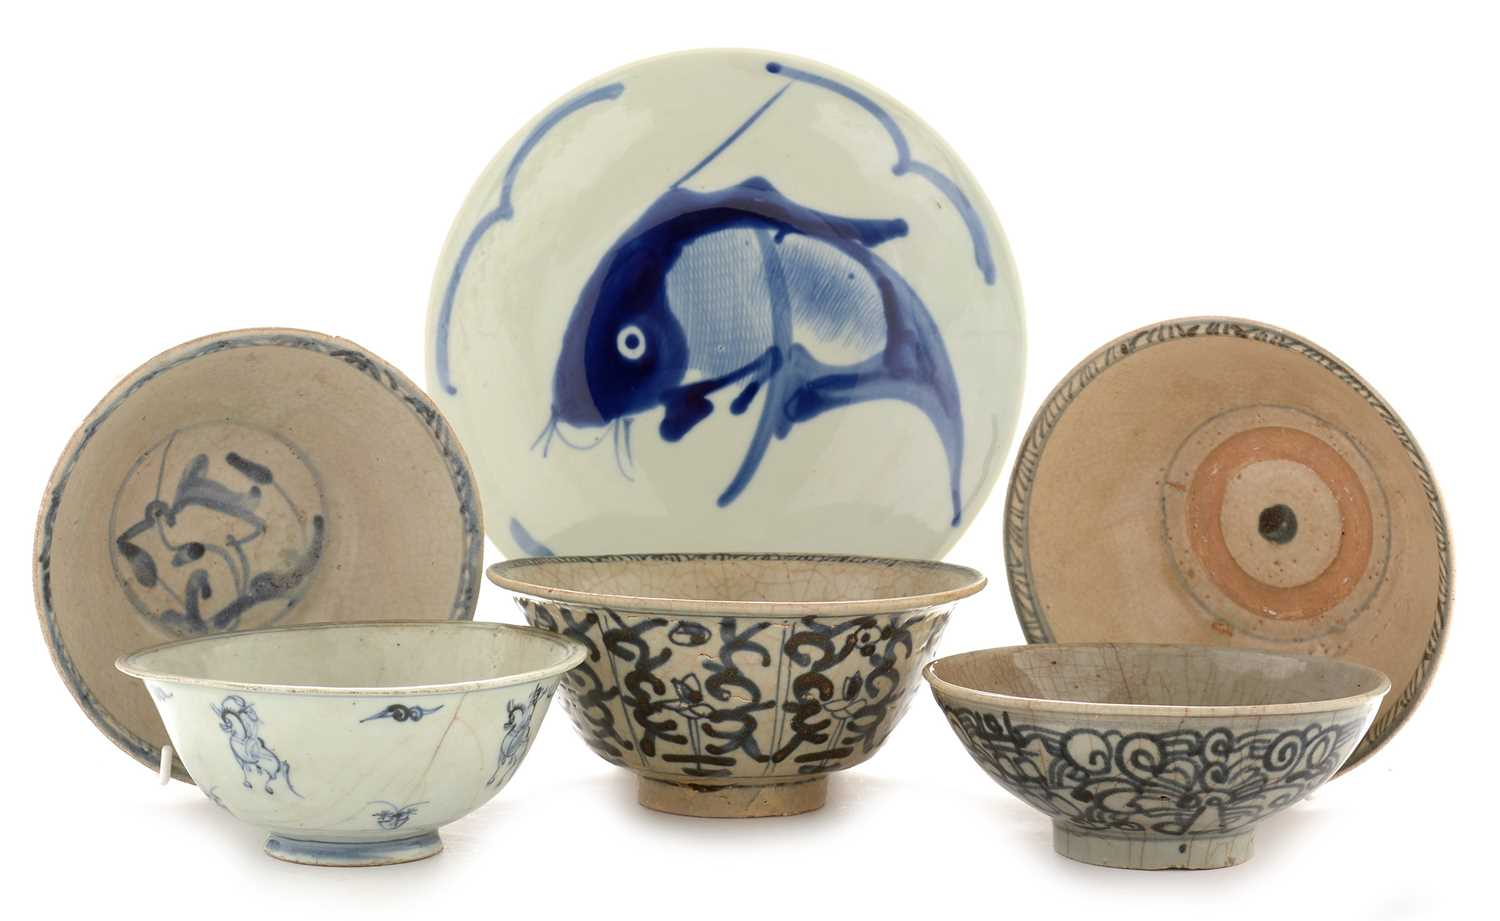 Lot 416 - Five Swatow ware bowls and a modern dish